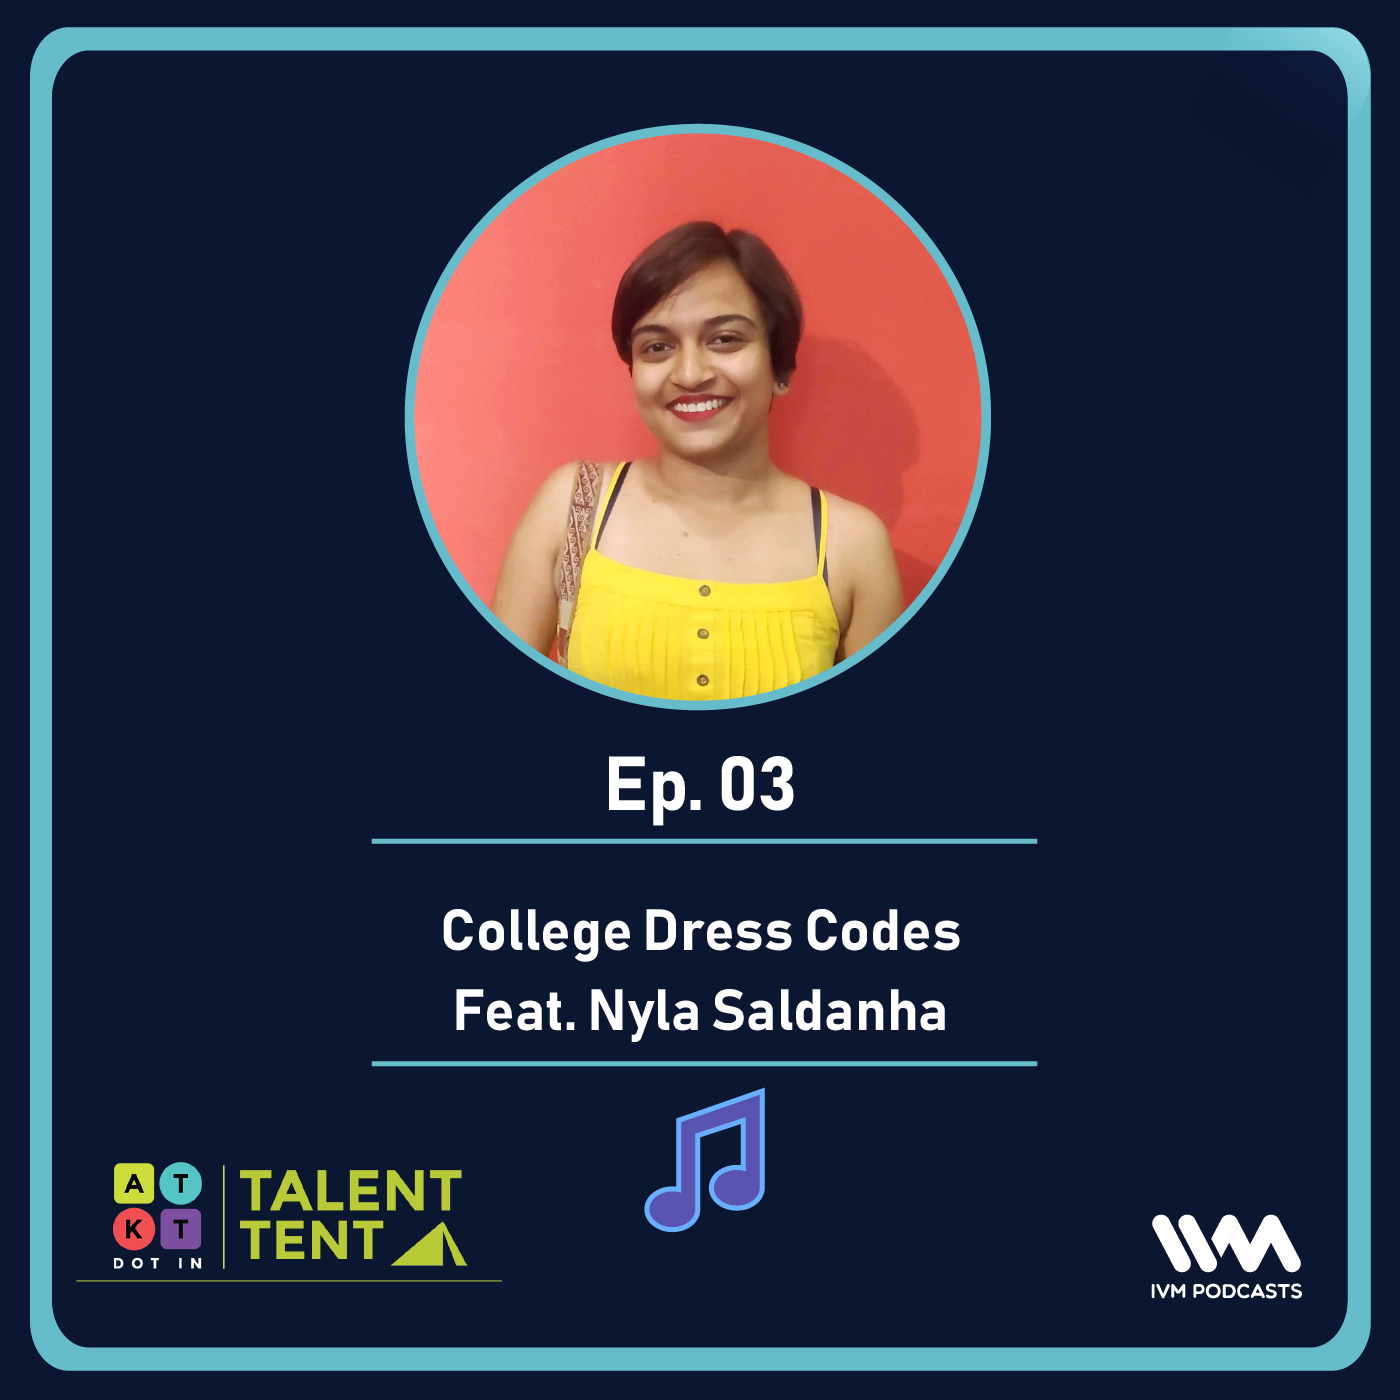 Ep. 03: College Dress Codes Feat. Nyla Saldanha